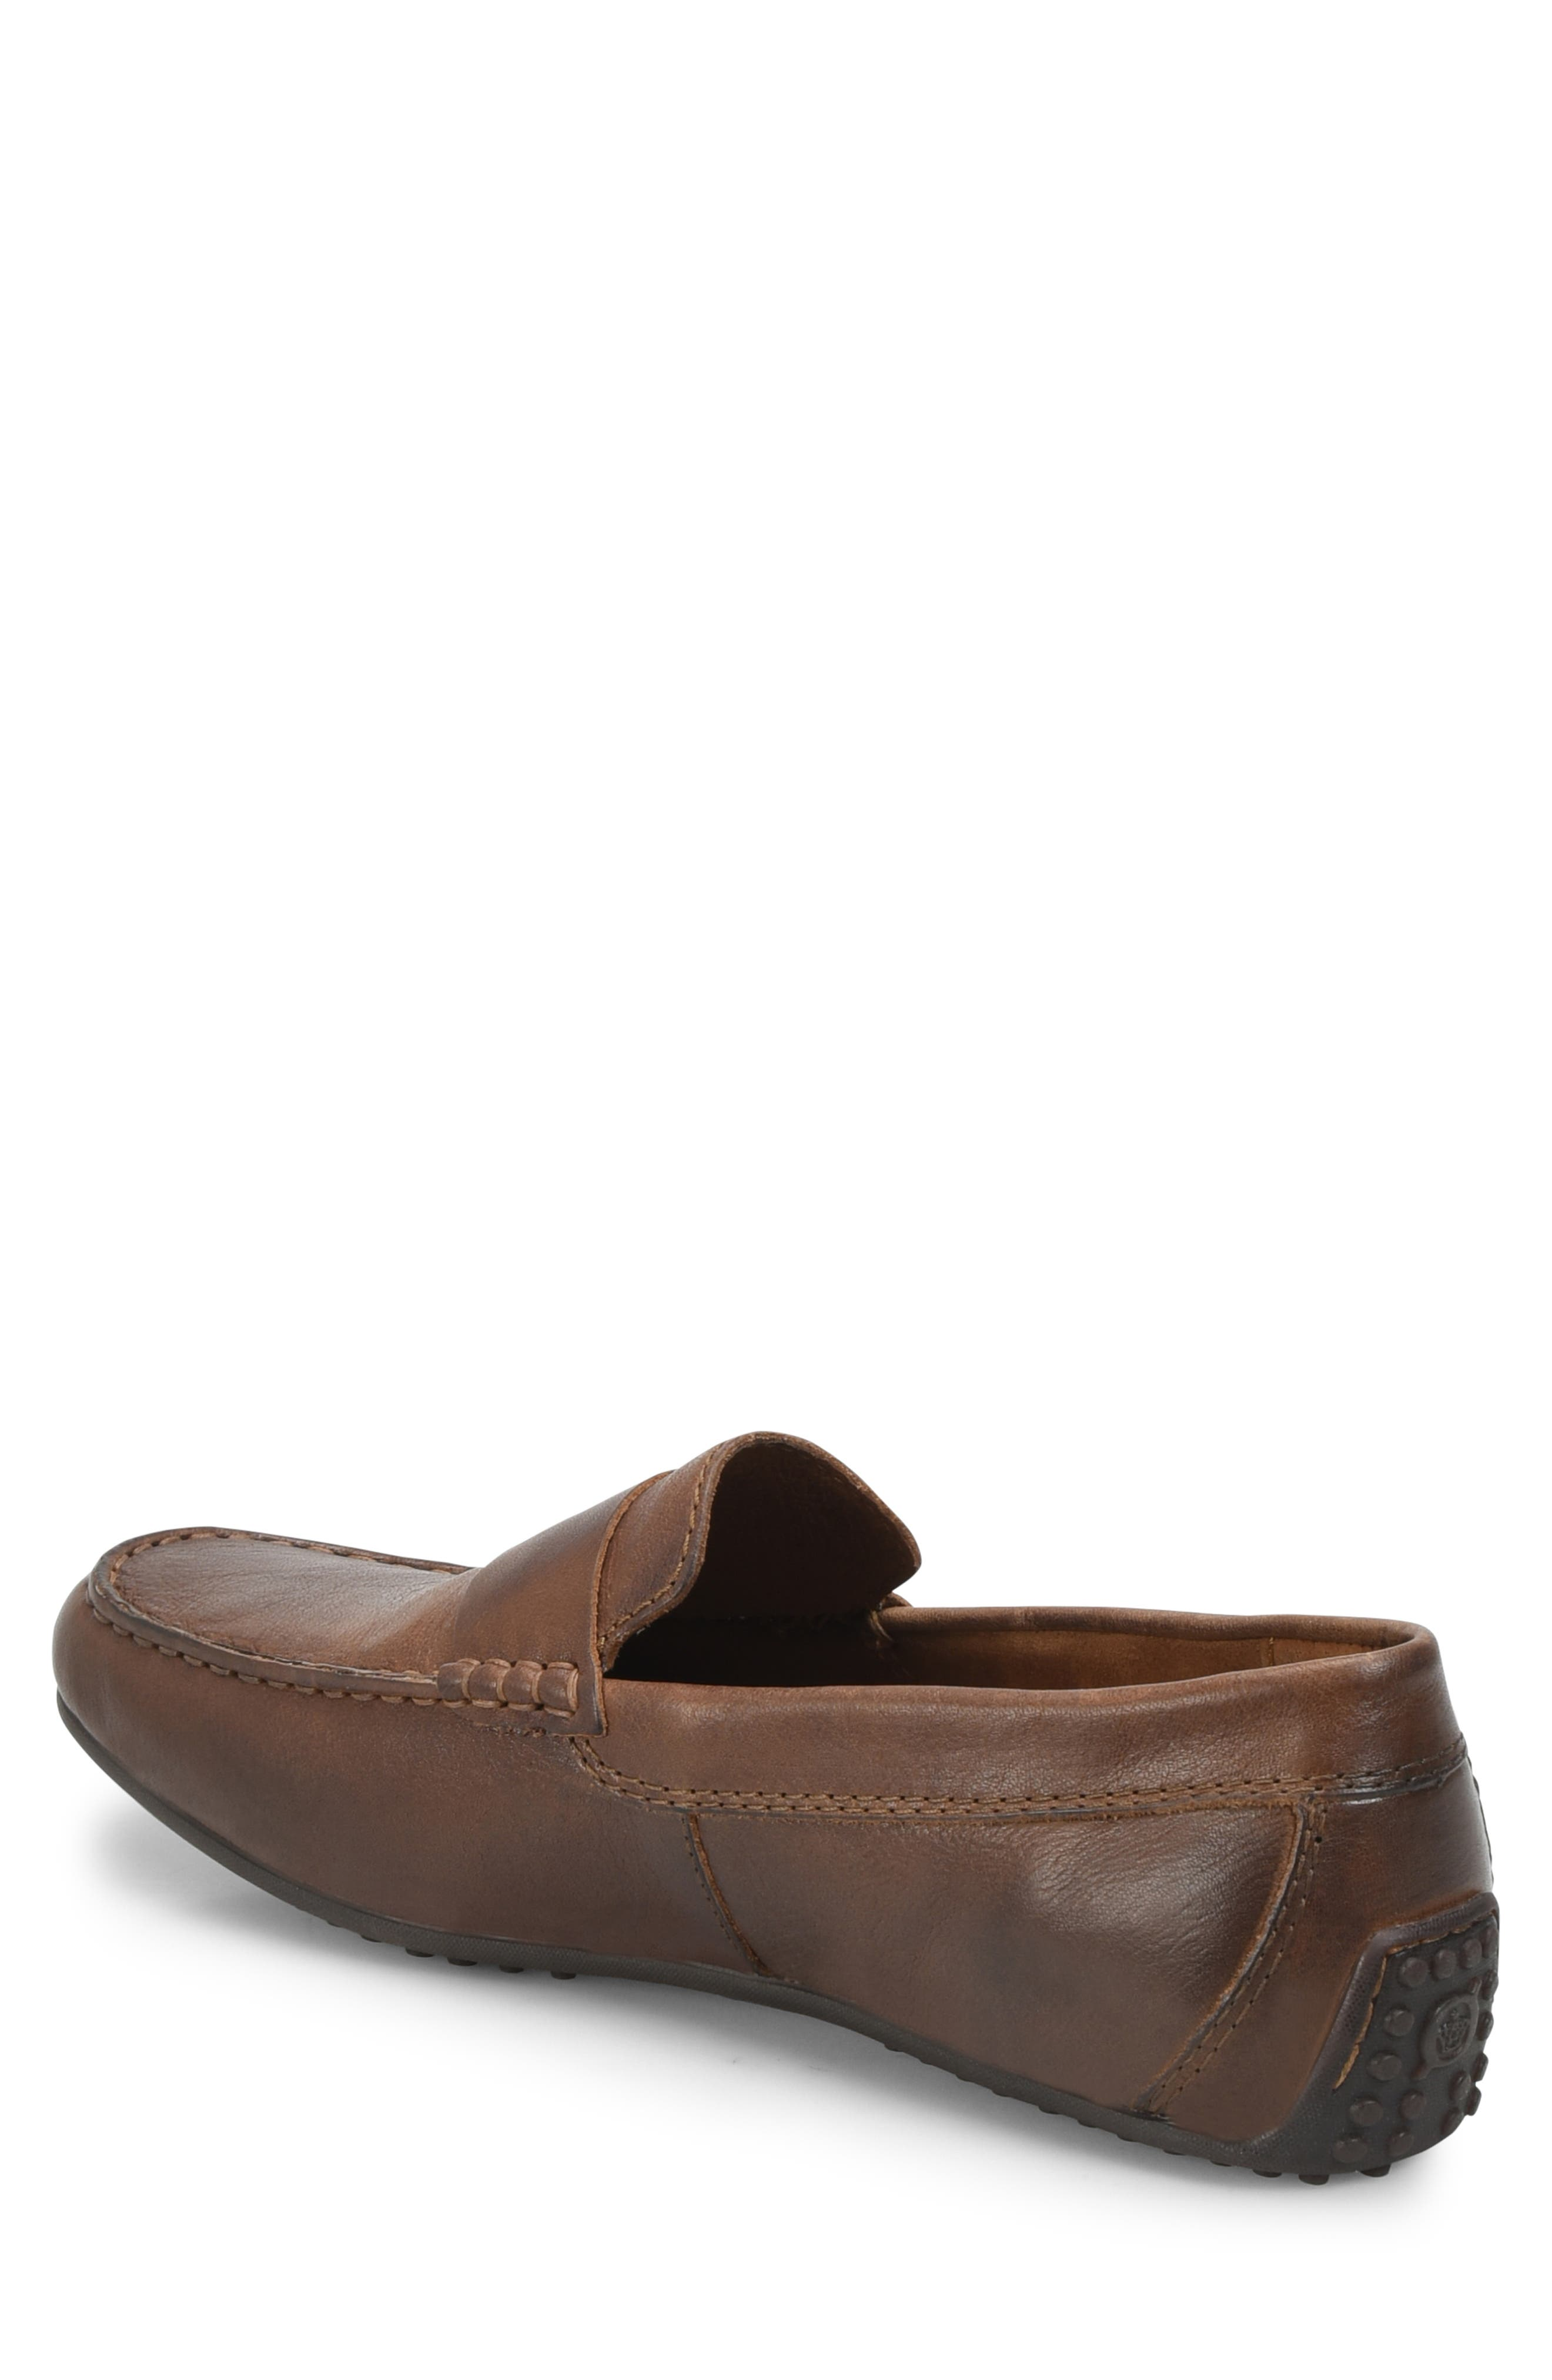 Ratner Driving Loafer,                             Alternate thumbnail 2, color,                             BROWN LEATHER